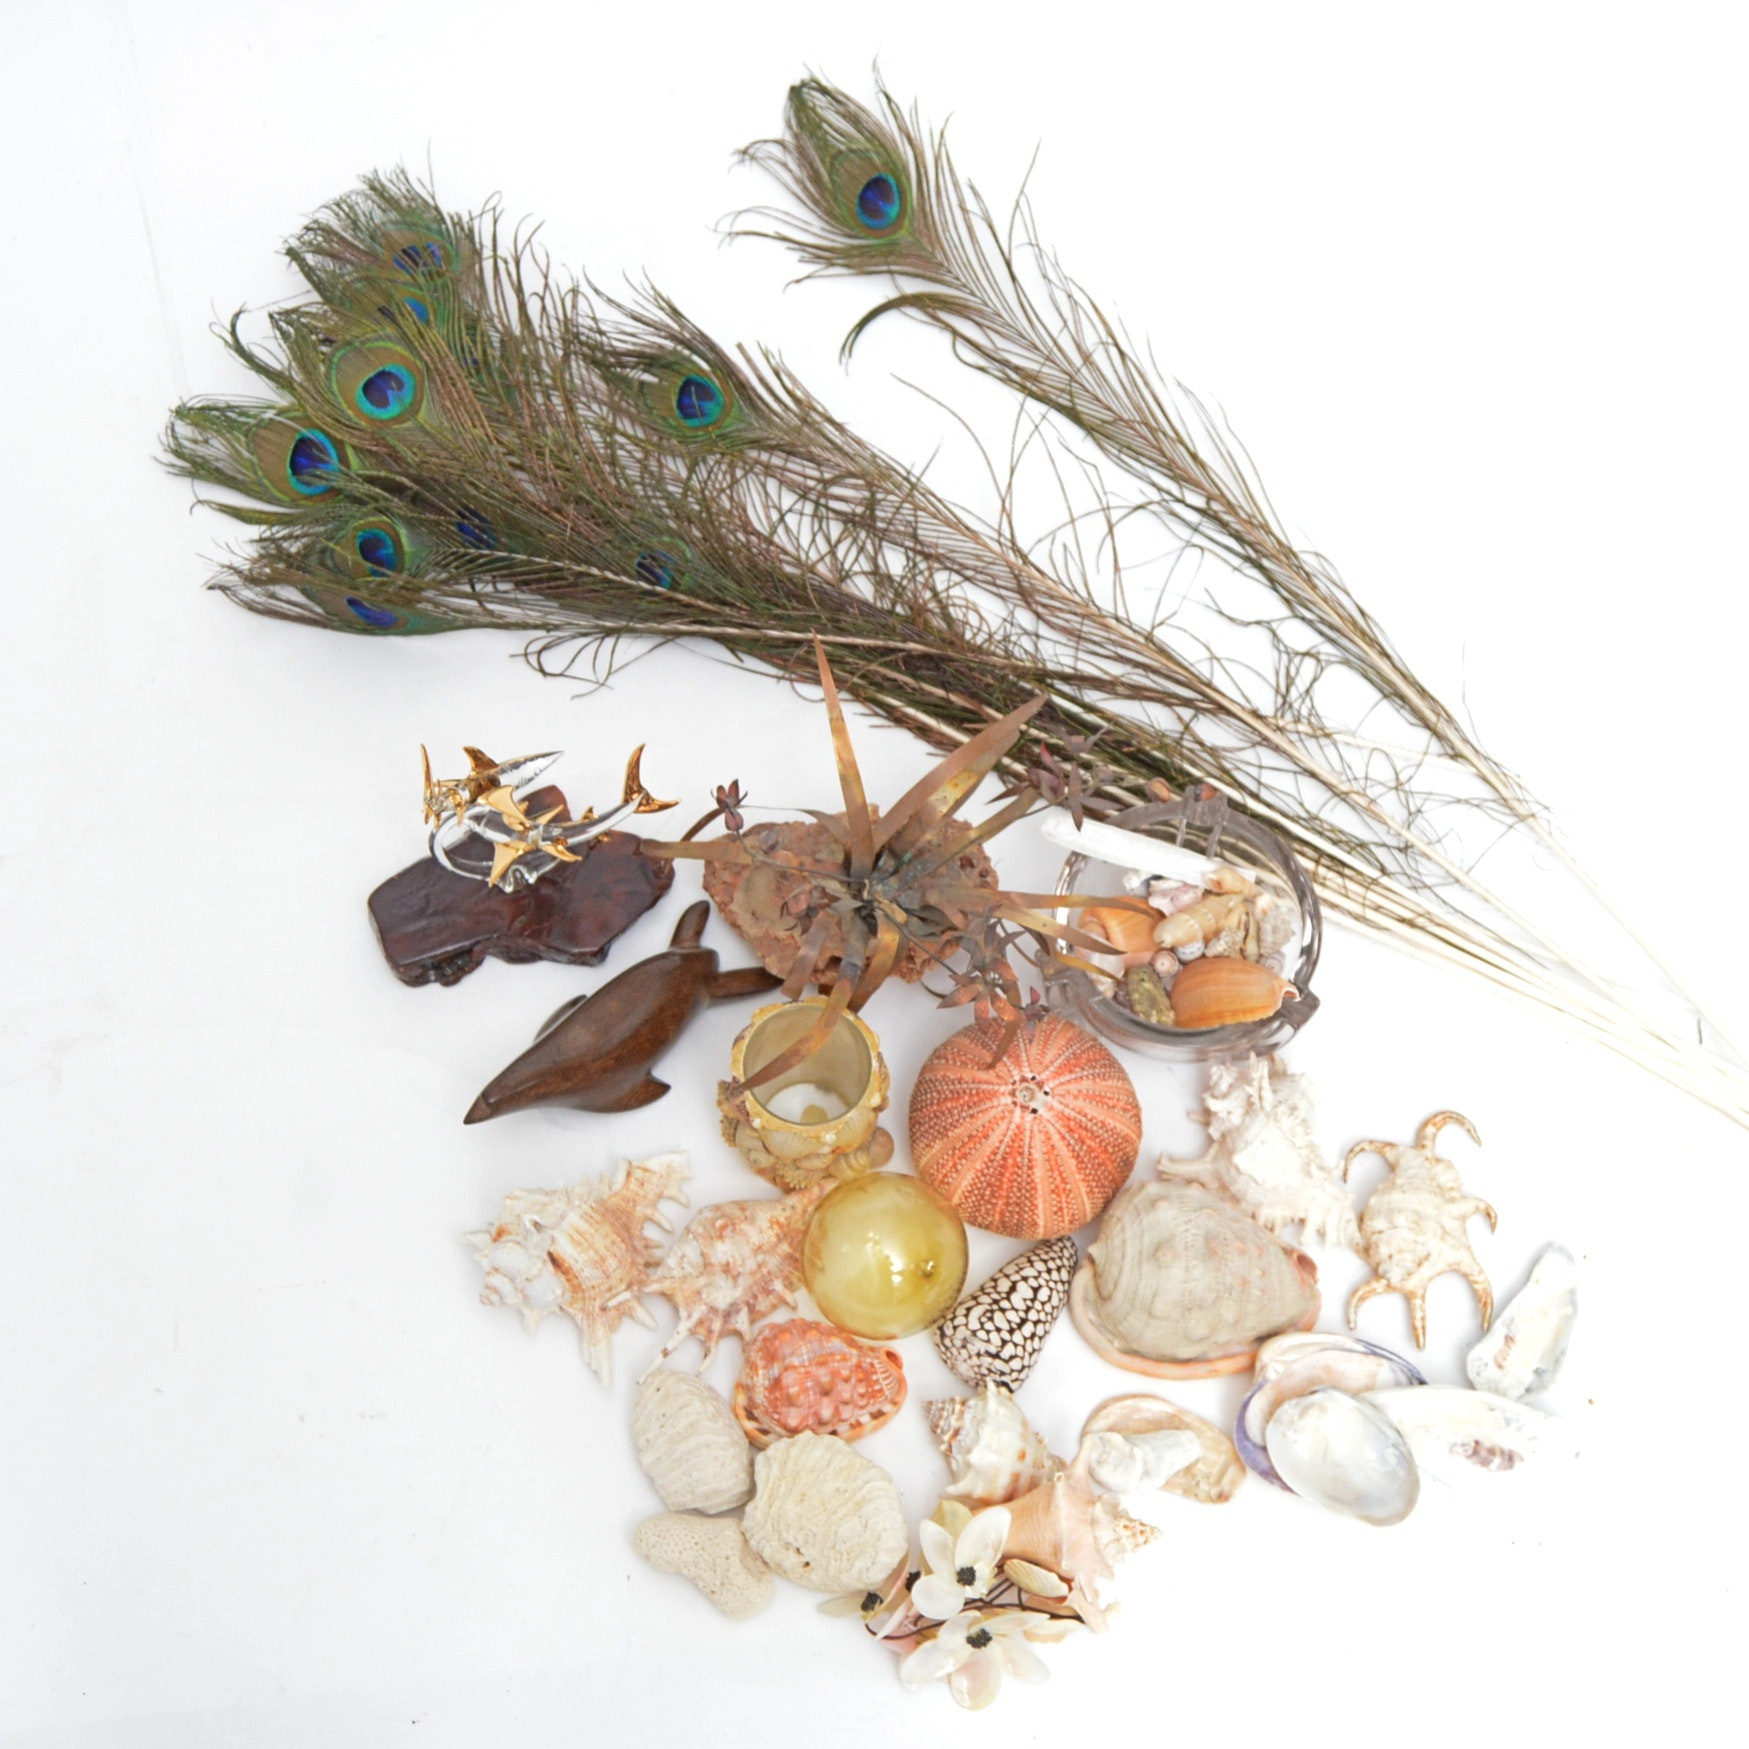 Seashells, Peacock Feathers, Fishing Float and Animal Sculptures